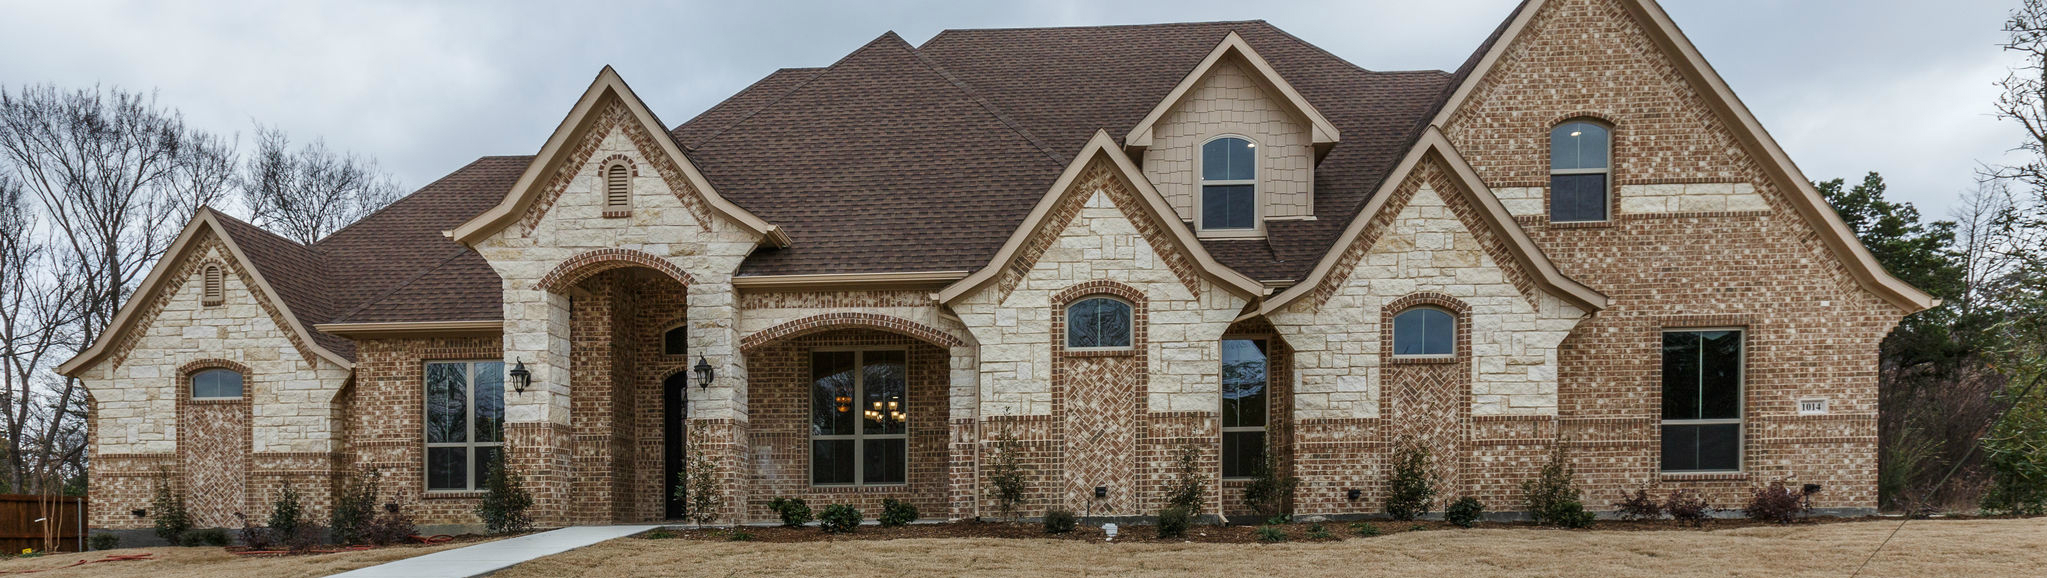 Brickman Homes & Construction